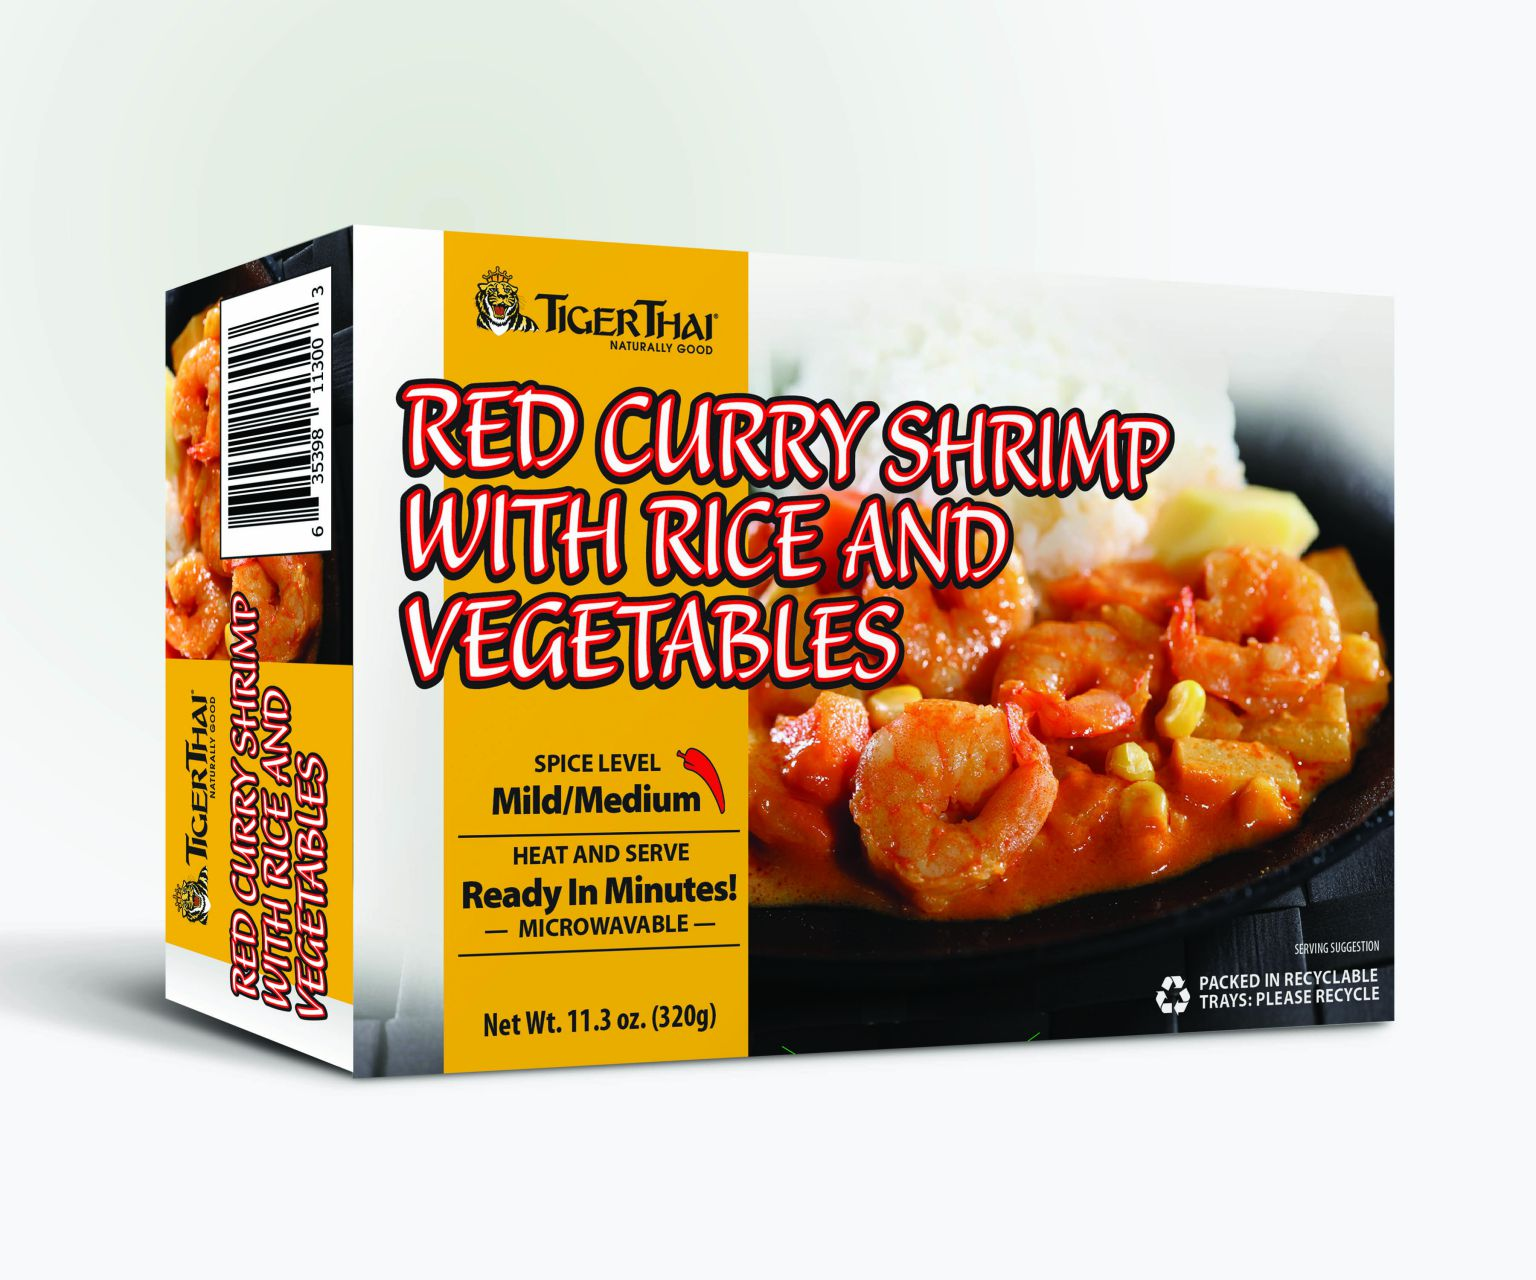 Red Curry Shrimp with Rice and Vegetables image